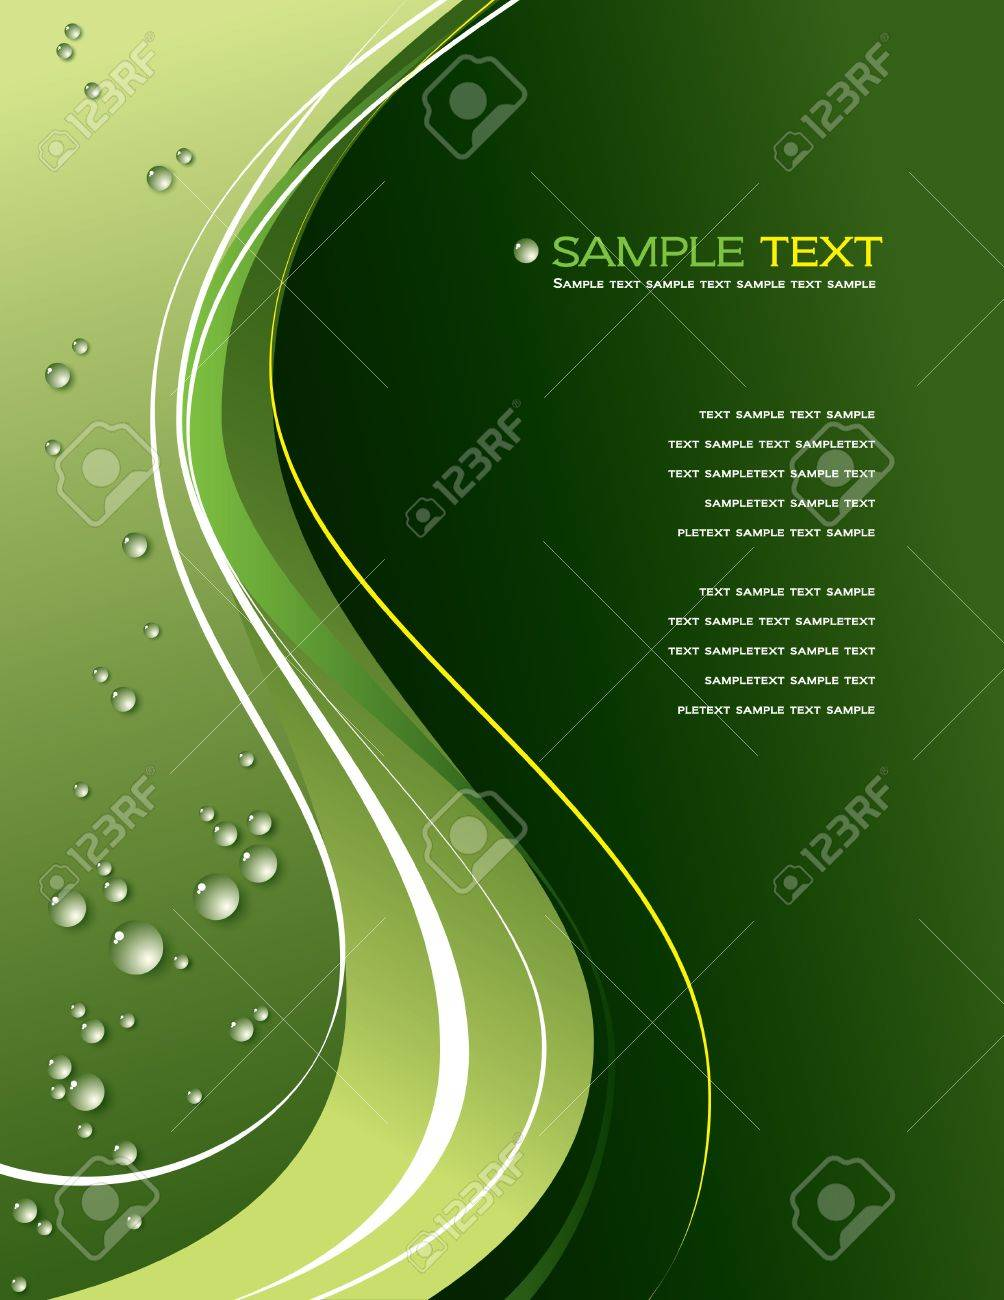 Abstract Vector Background  Eps10 Stock Vector - 13561109